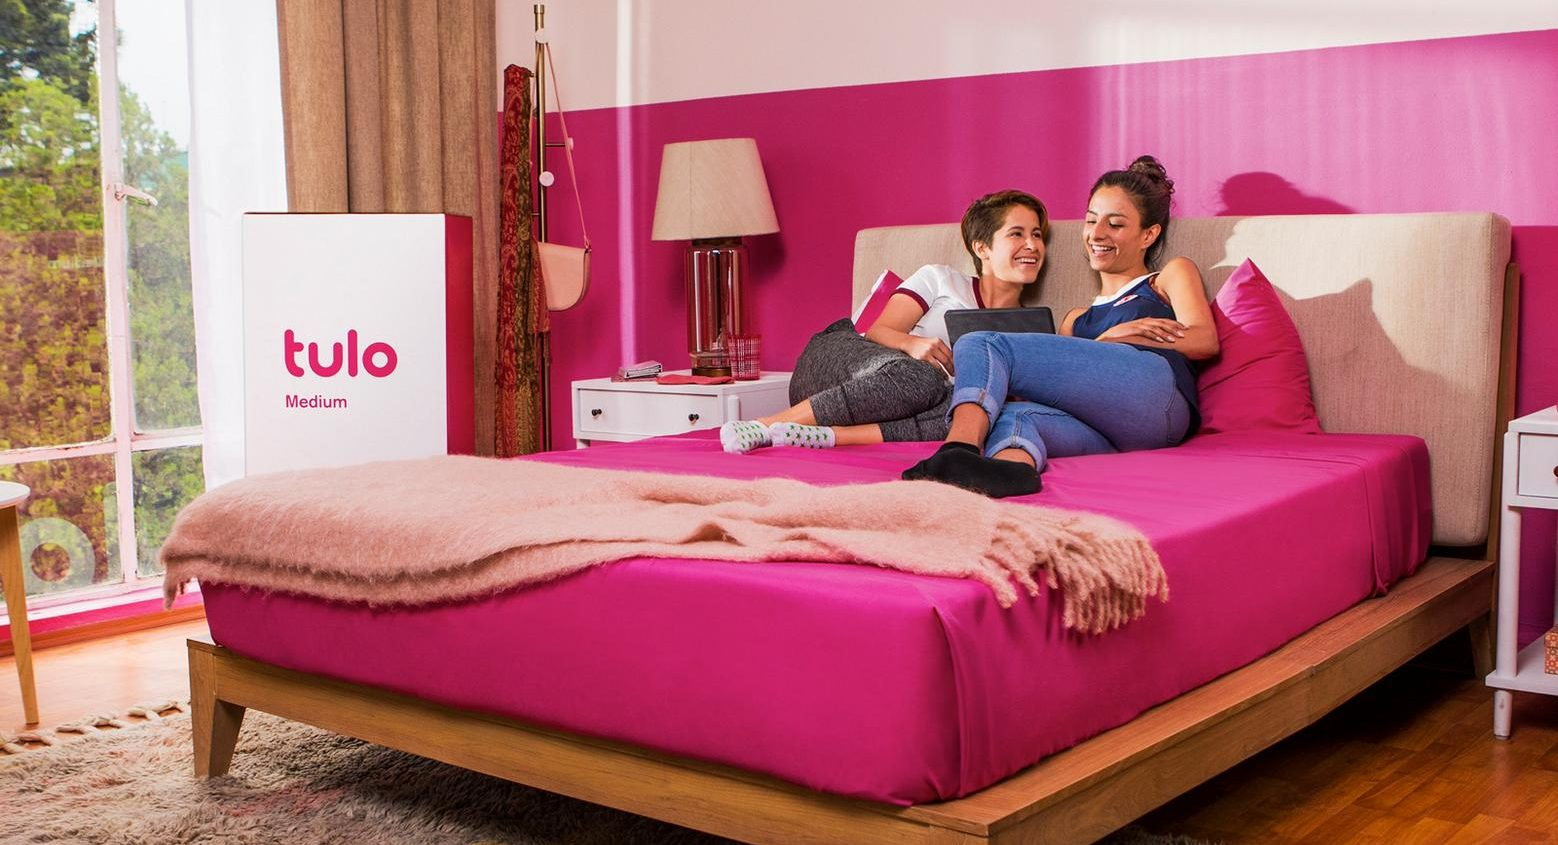 Tulo Mattress Review and Rated By Experts